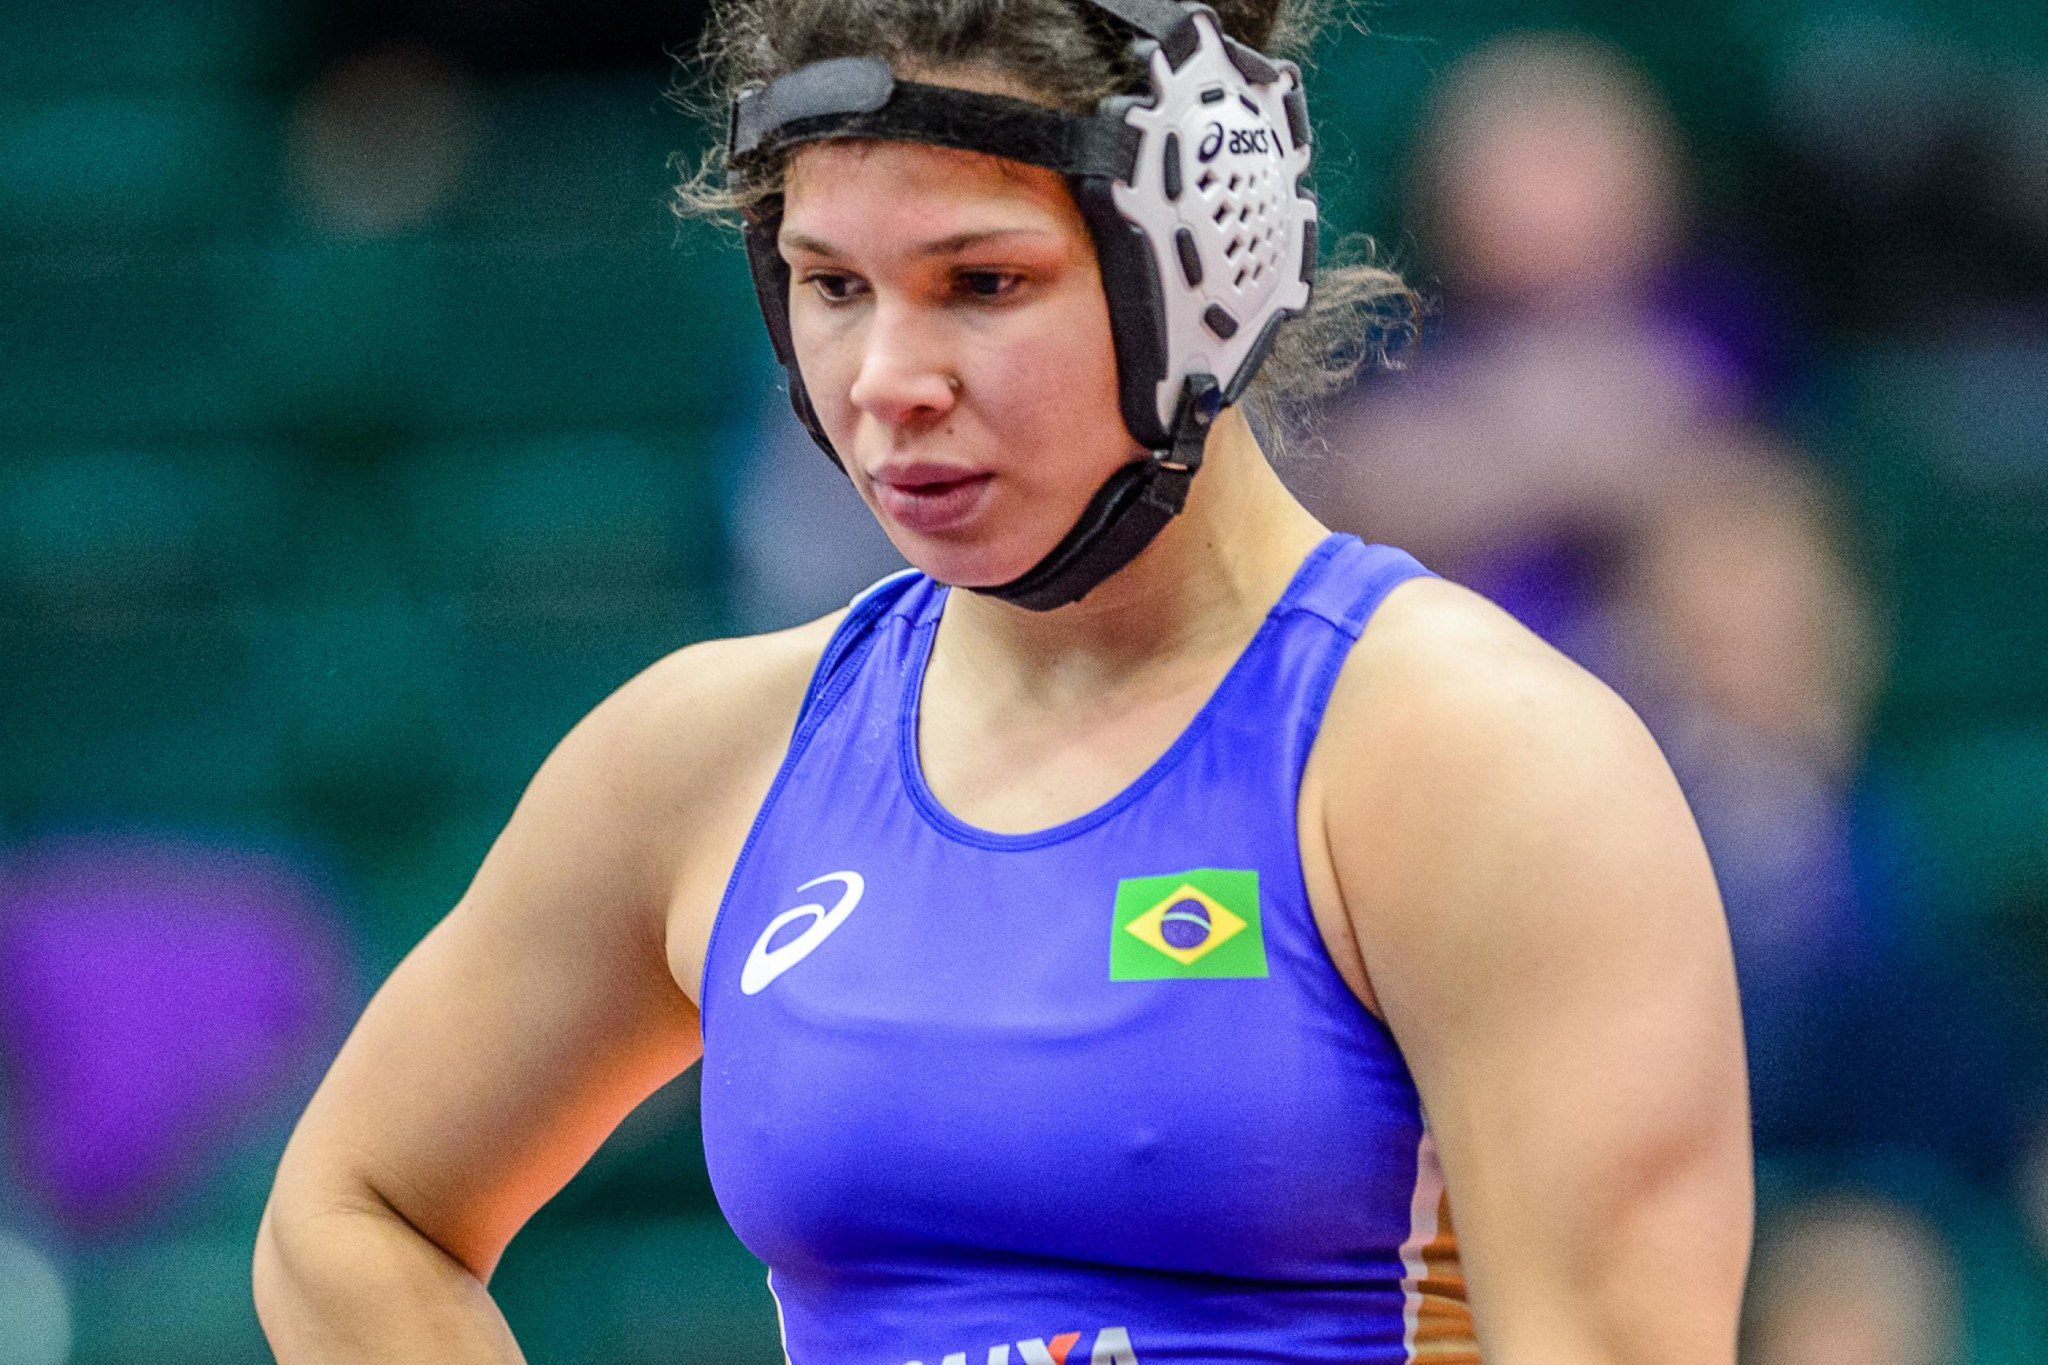 Lais Nunes de Oliveira prevented another member of the US team from topping a podium ©UWW